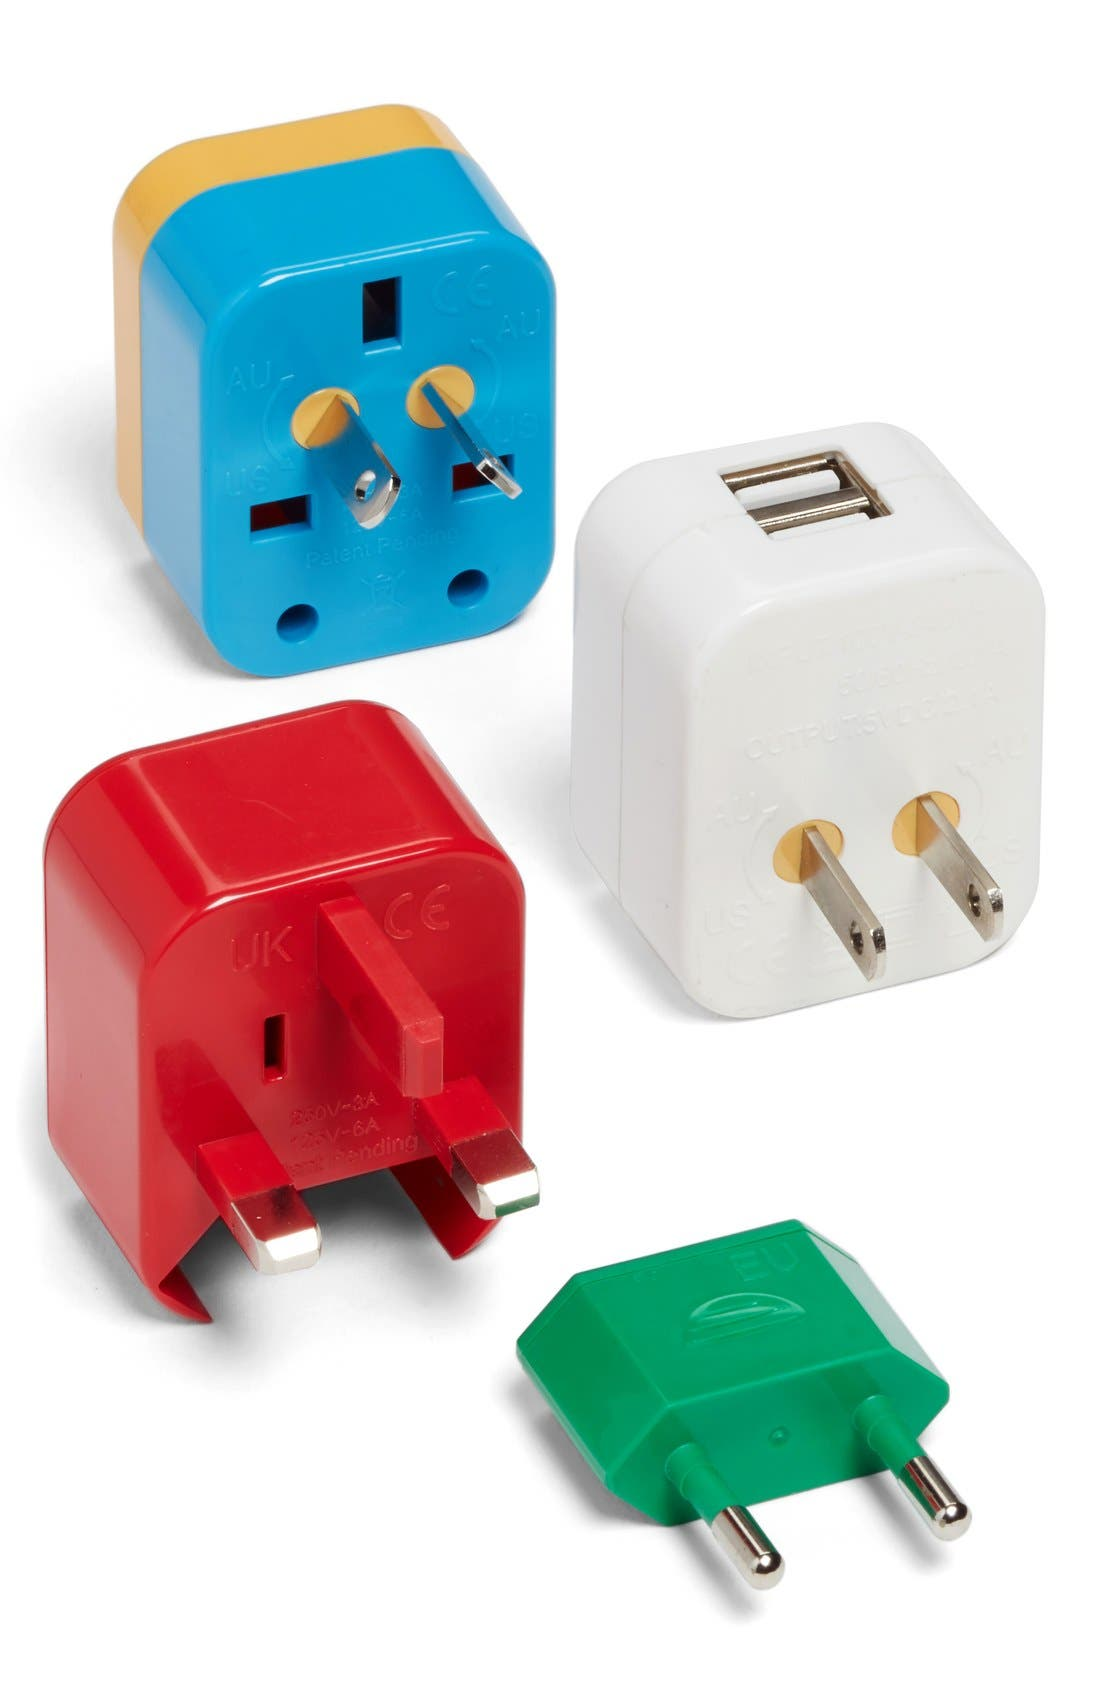 5-in-1 Universal Travel Adapter,                             Alternate thumbnail 3, color,                             600